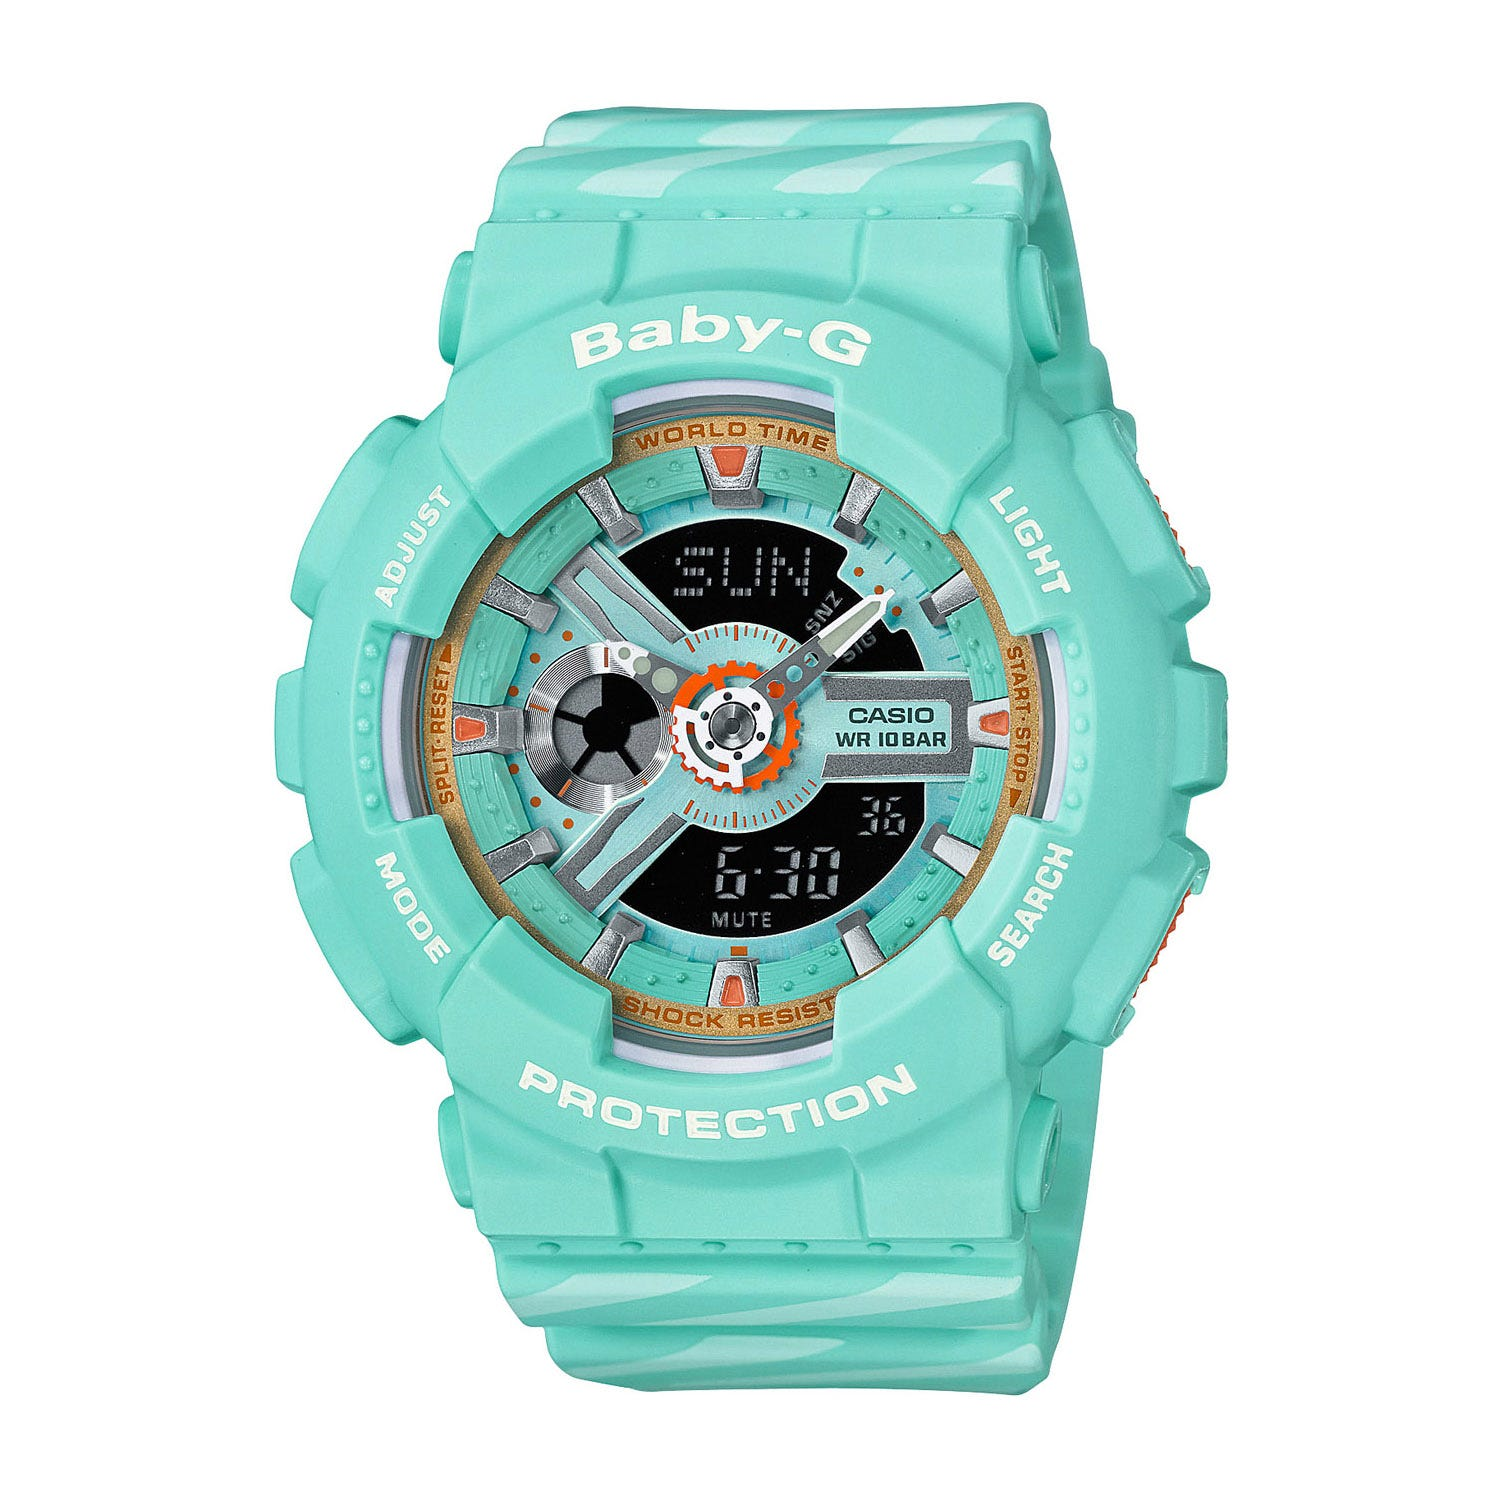 Casio Baby-G Turquoise Dial Camouflage Rubber Strap Ladies' Watch